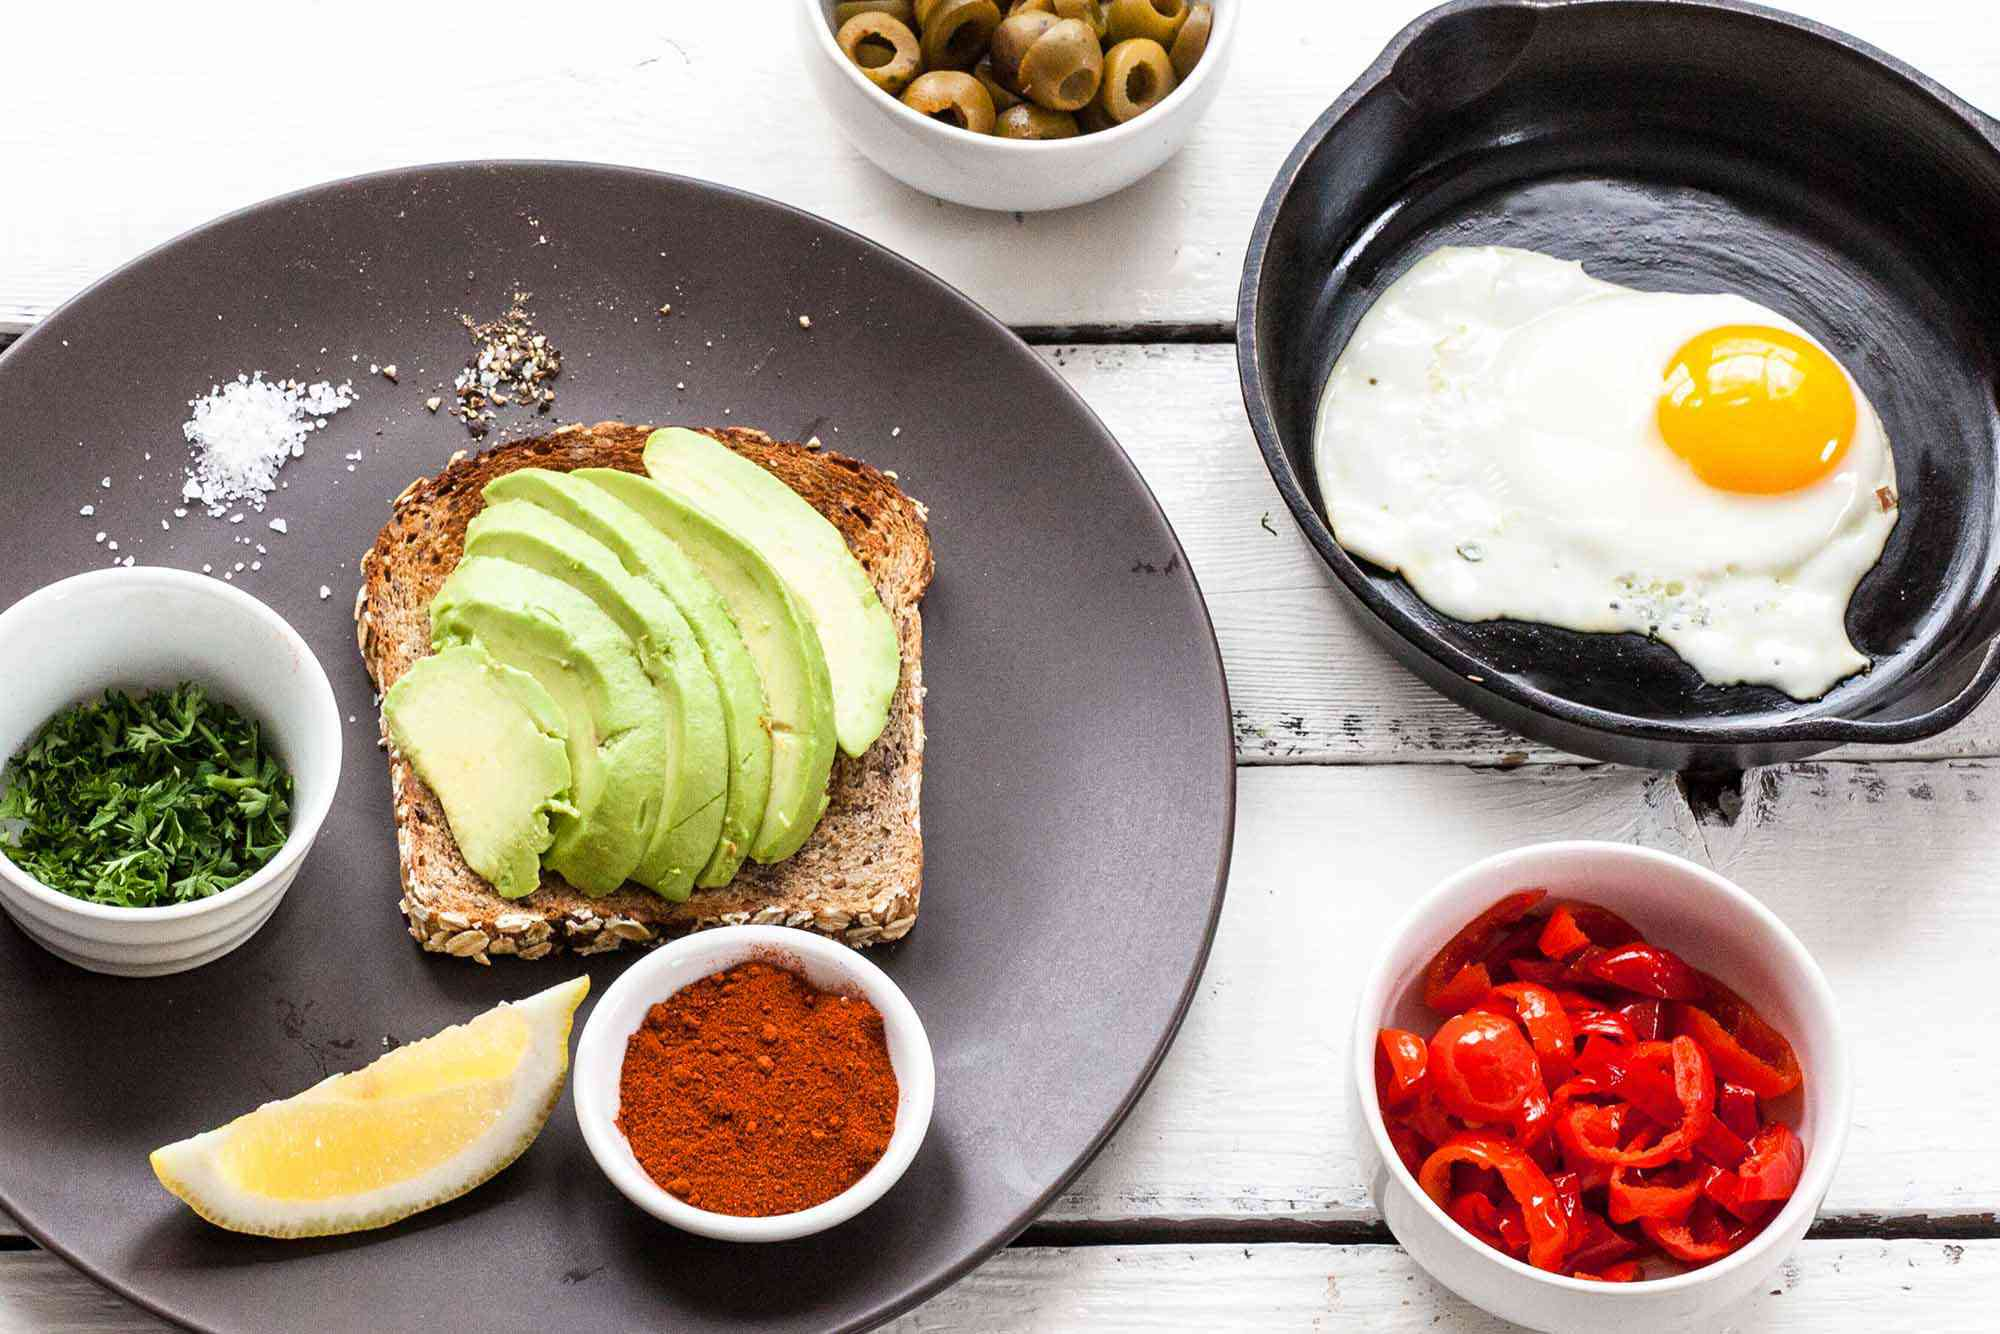 Avocado Toast with Fried Egg, Olives, and Paprika - Prep